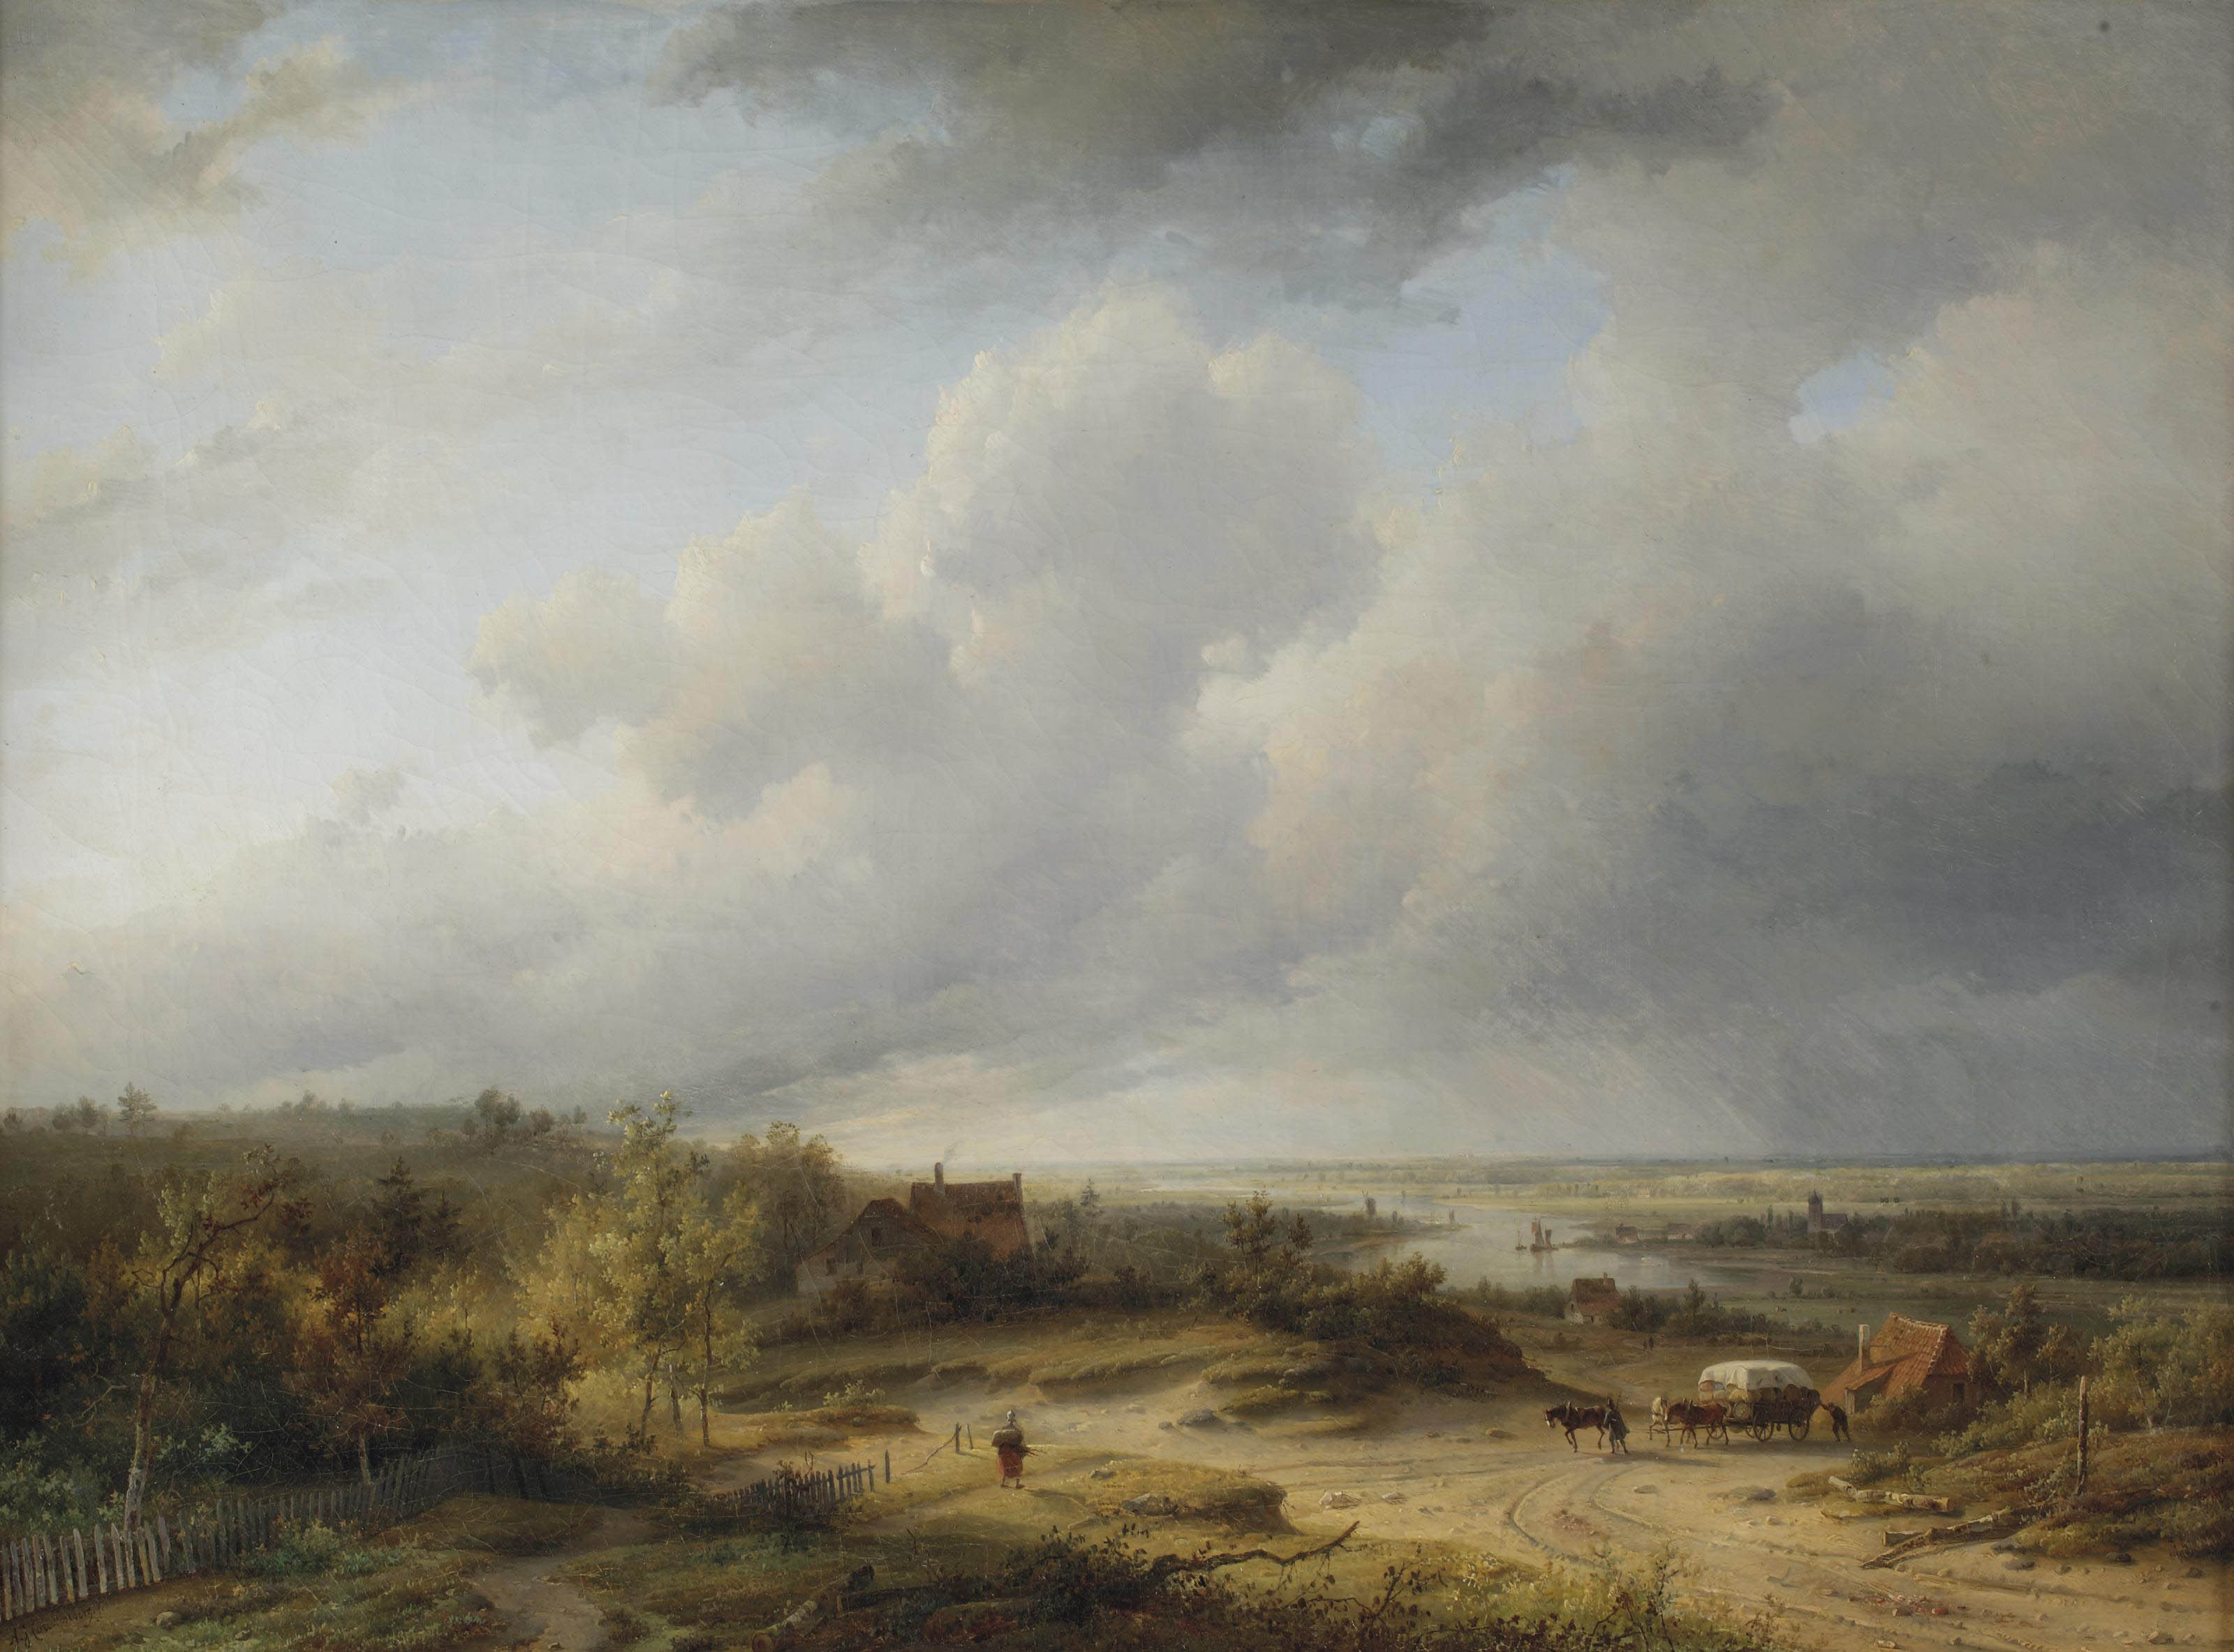 A riverlandscape with a horse-drawn cart